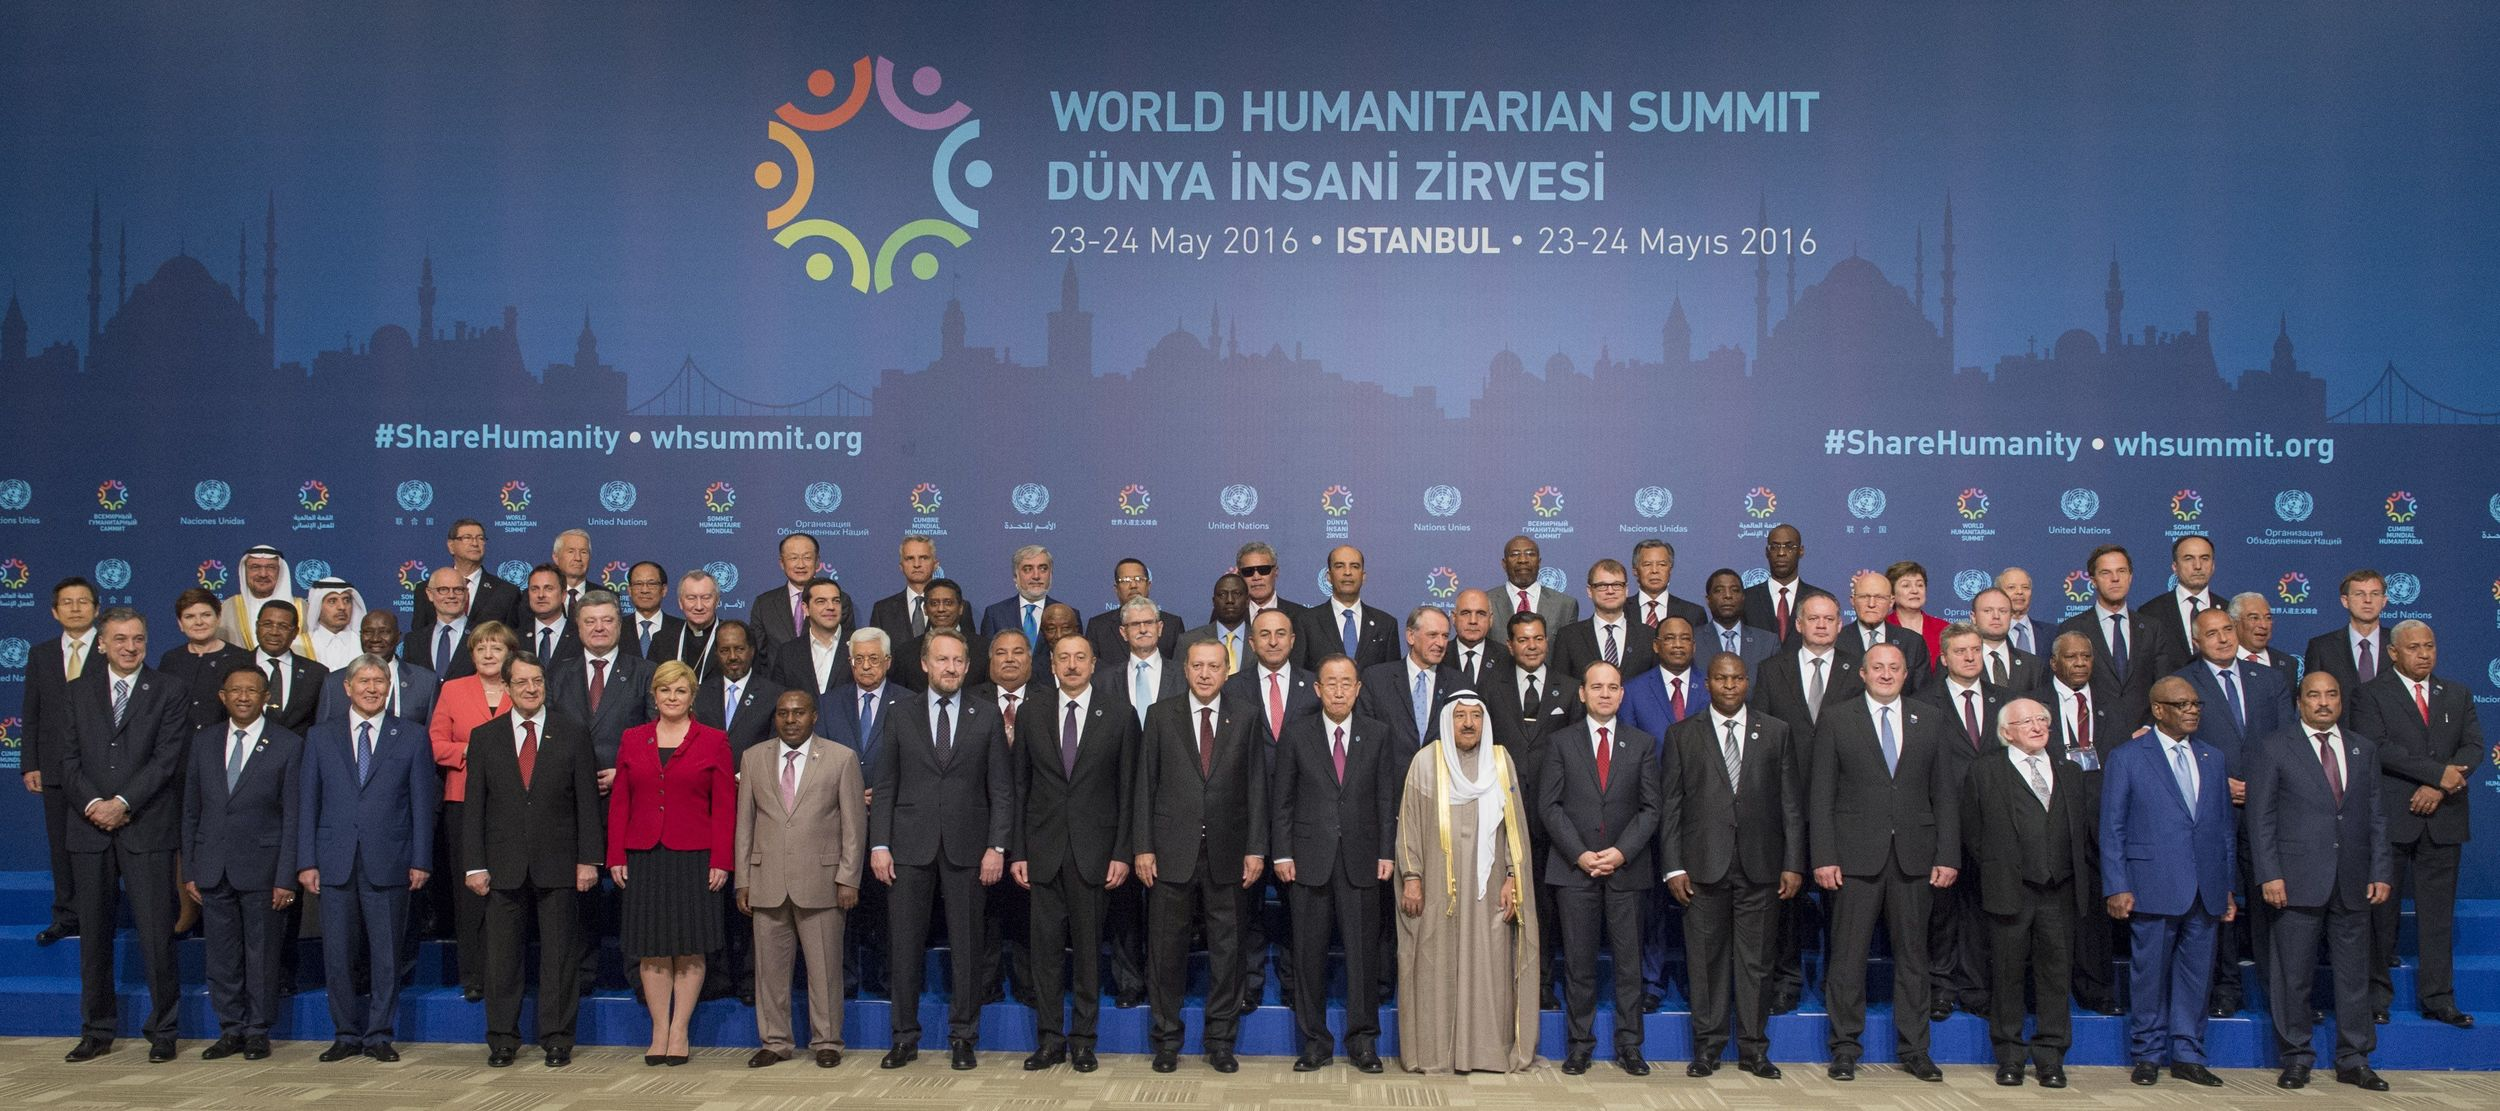 World leaders posing for a photo at the first-ever World Humanitarian Summit. Credit:  Talk Media News